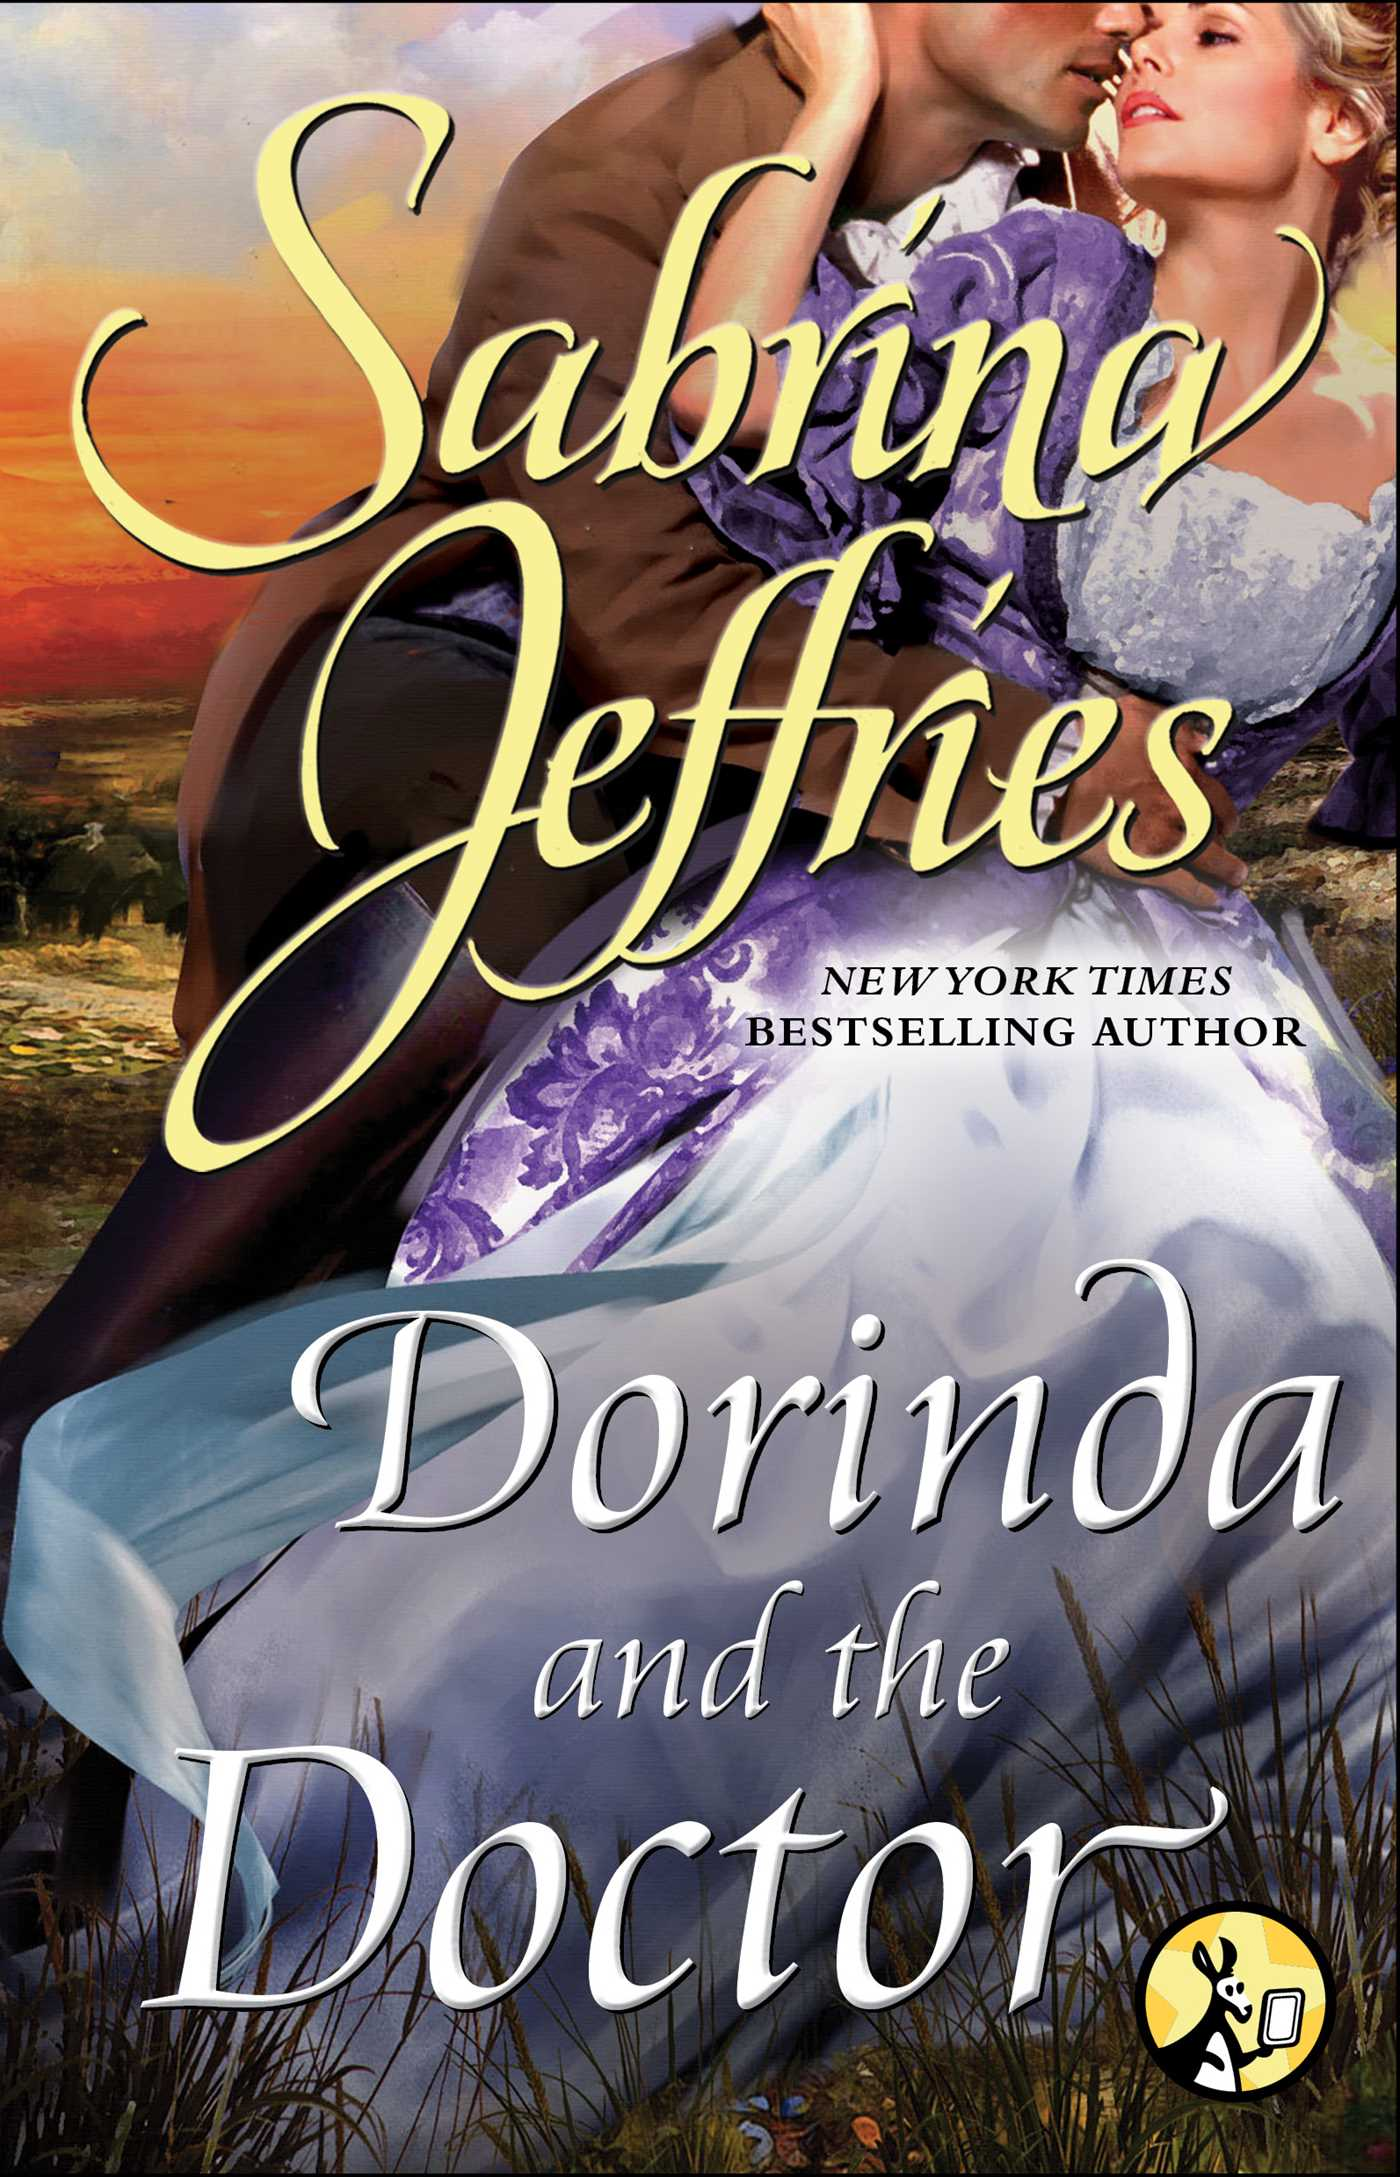 Dorinda and the doctor 9781476770536 hr